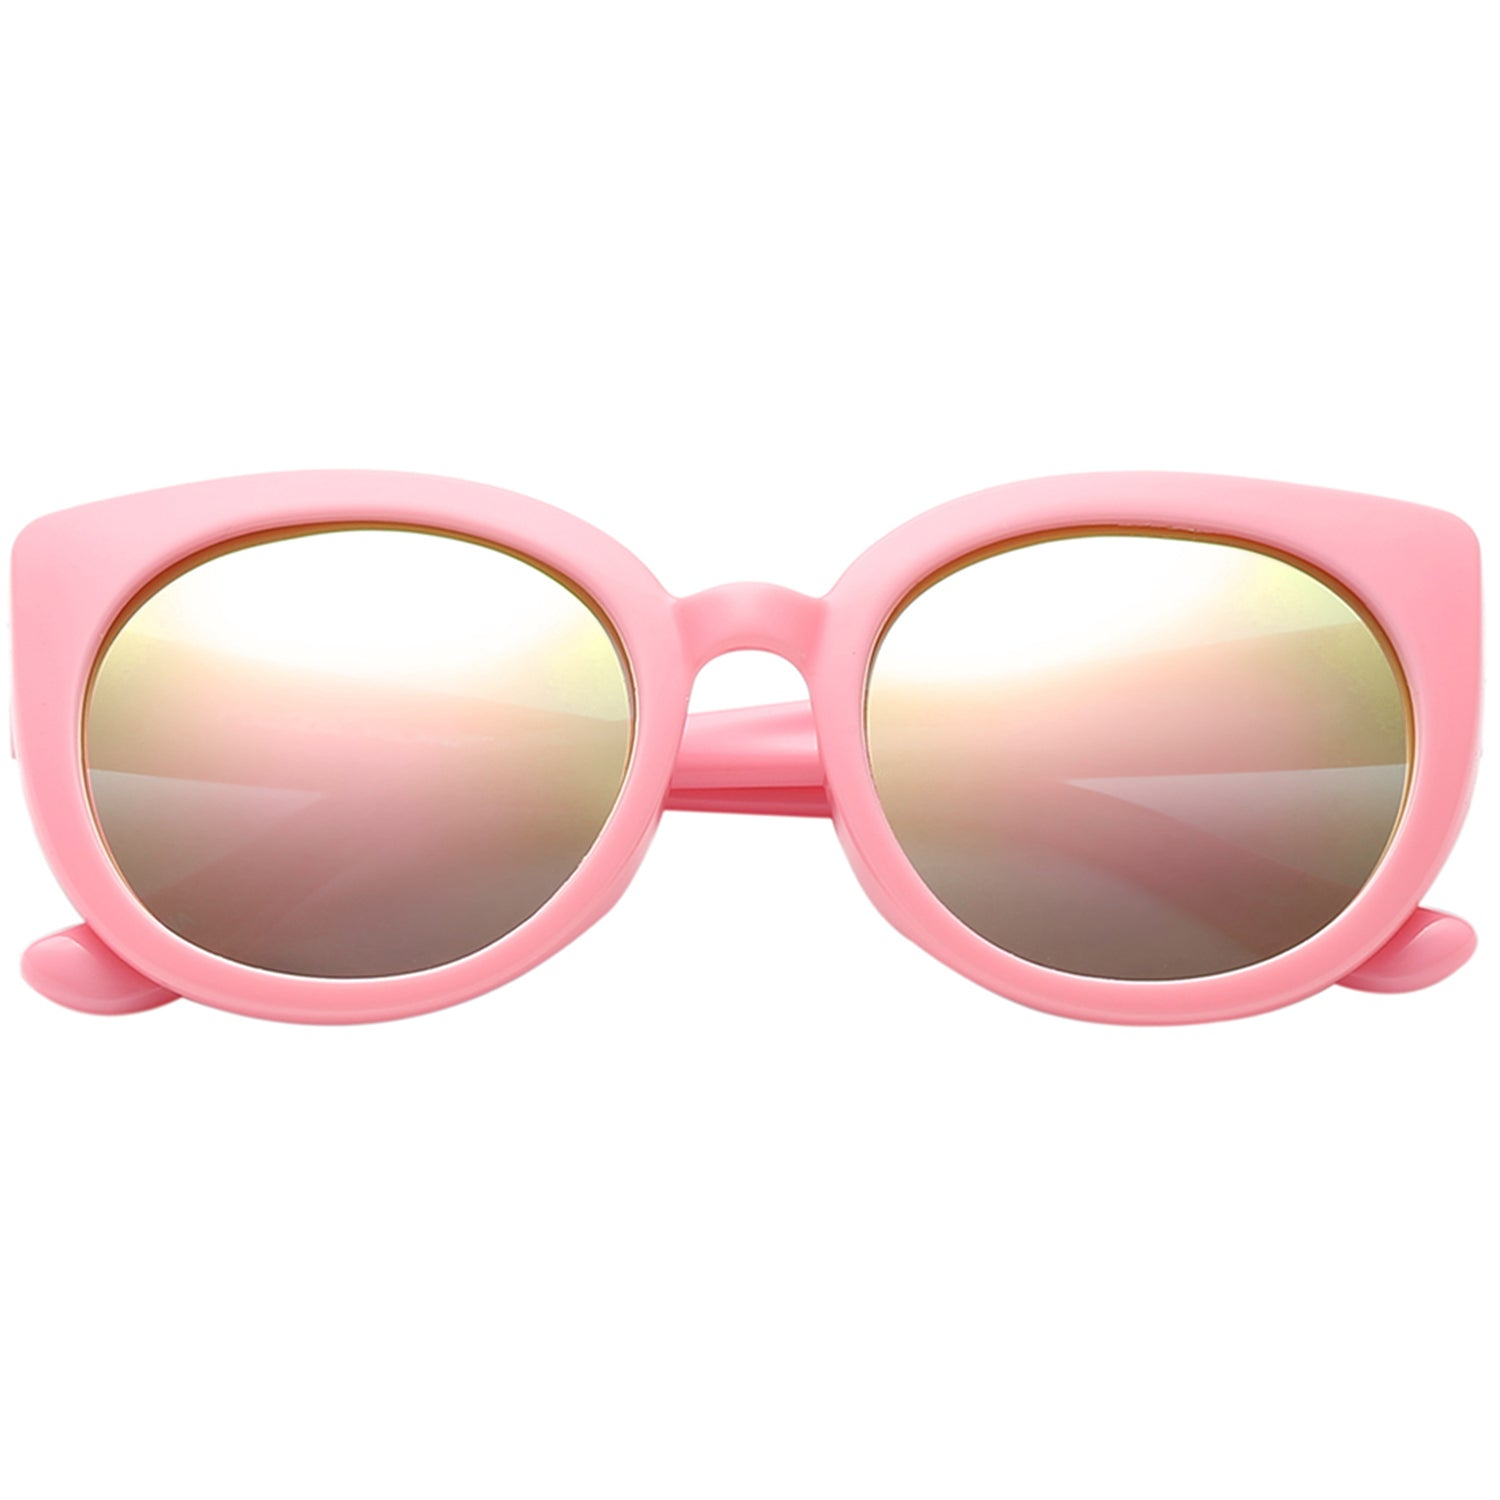 Polarspex Polarized Elastic Cateyes Style (BPA Free) Kids Sunglasses with Princess Pink Frames and Polarized Pink Quartz Lenses for Girls (Ages 2 - 8)